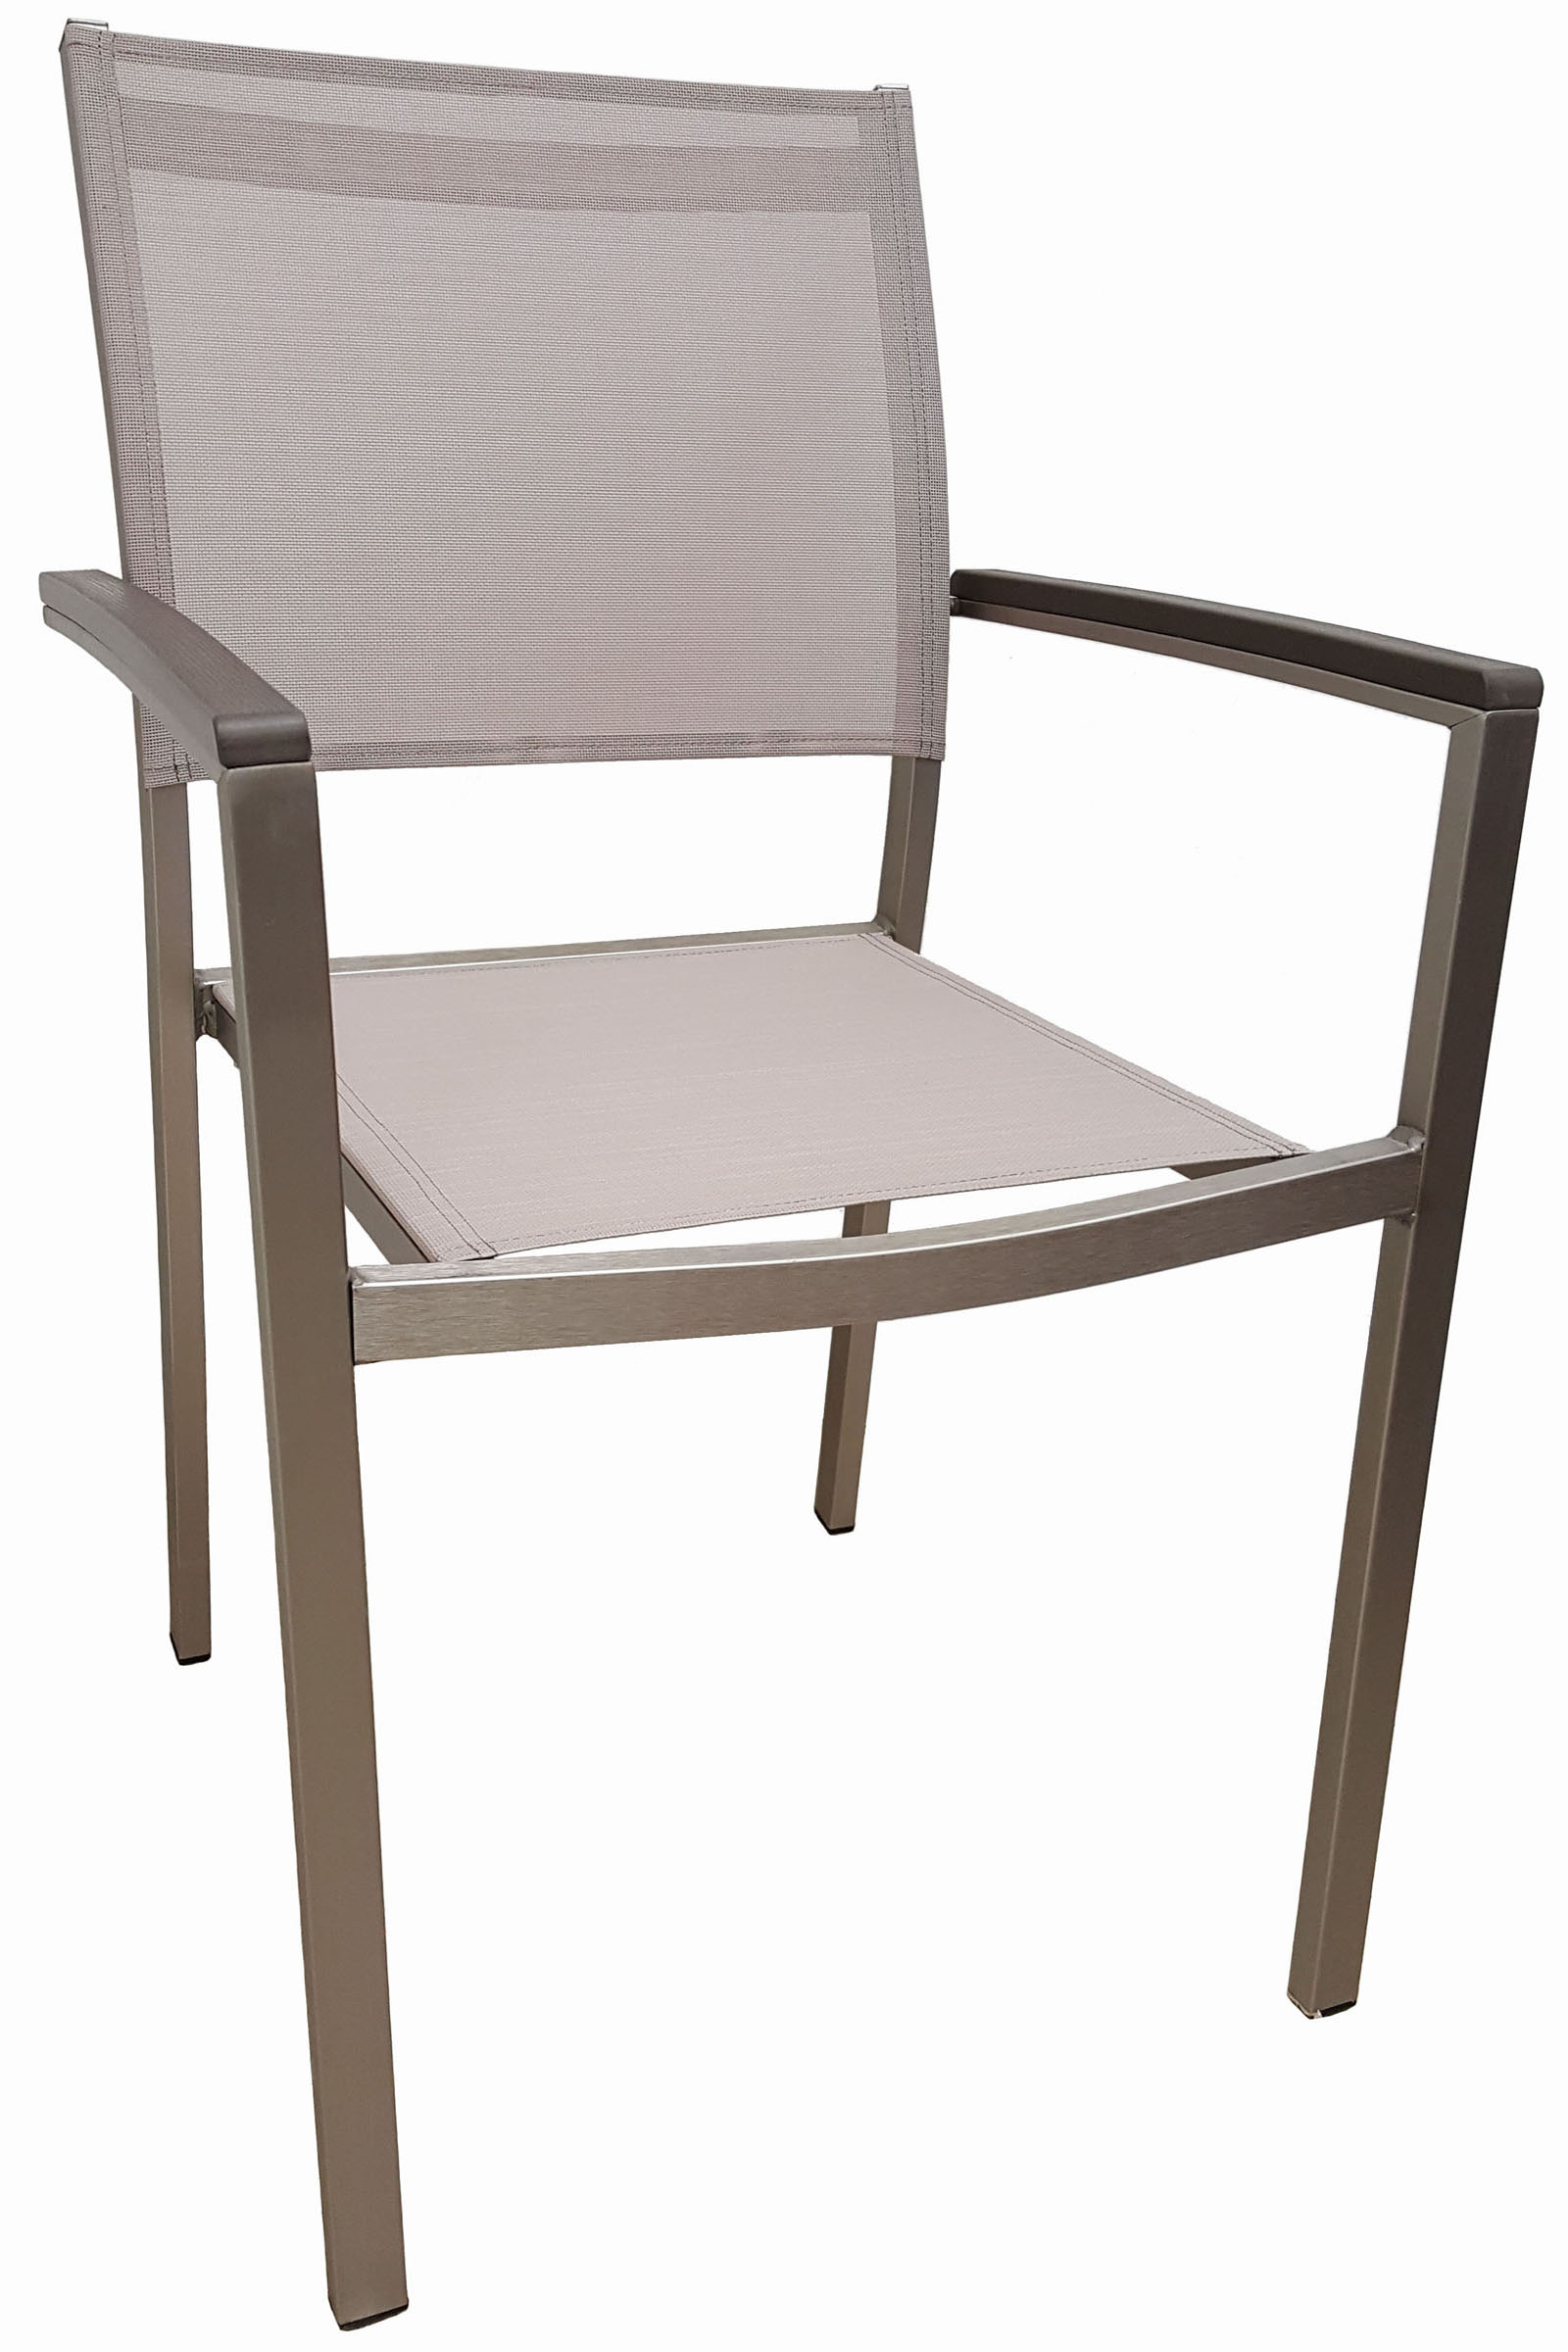 AL-420-04-TEX MADISON ARMCHAIR B.ALUM/LT GREY TEX